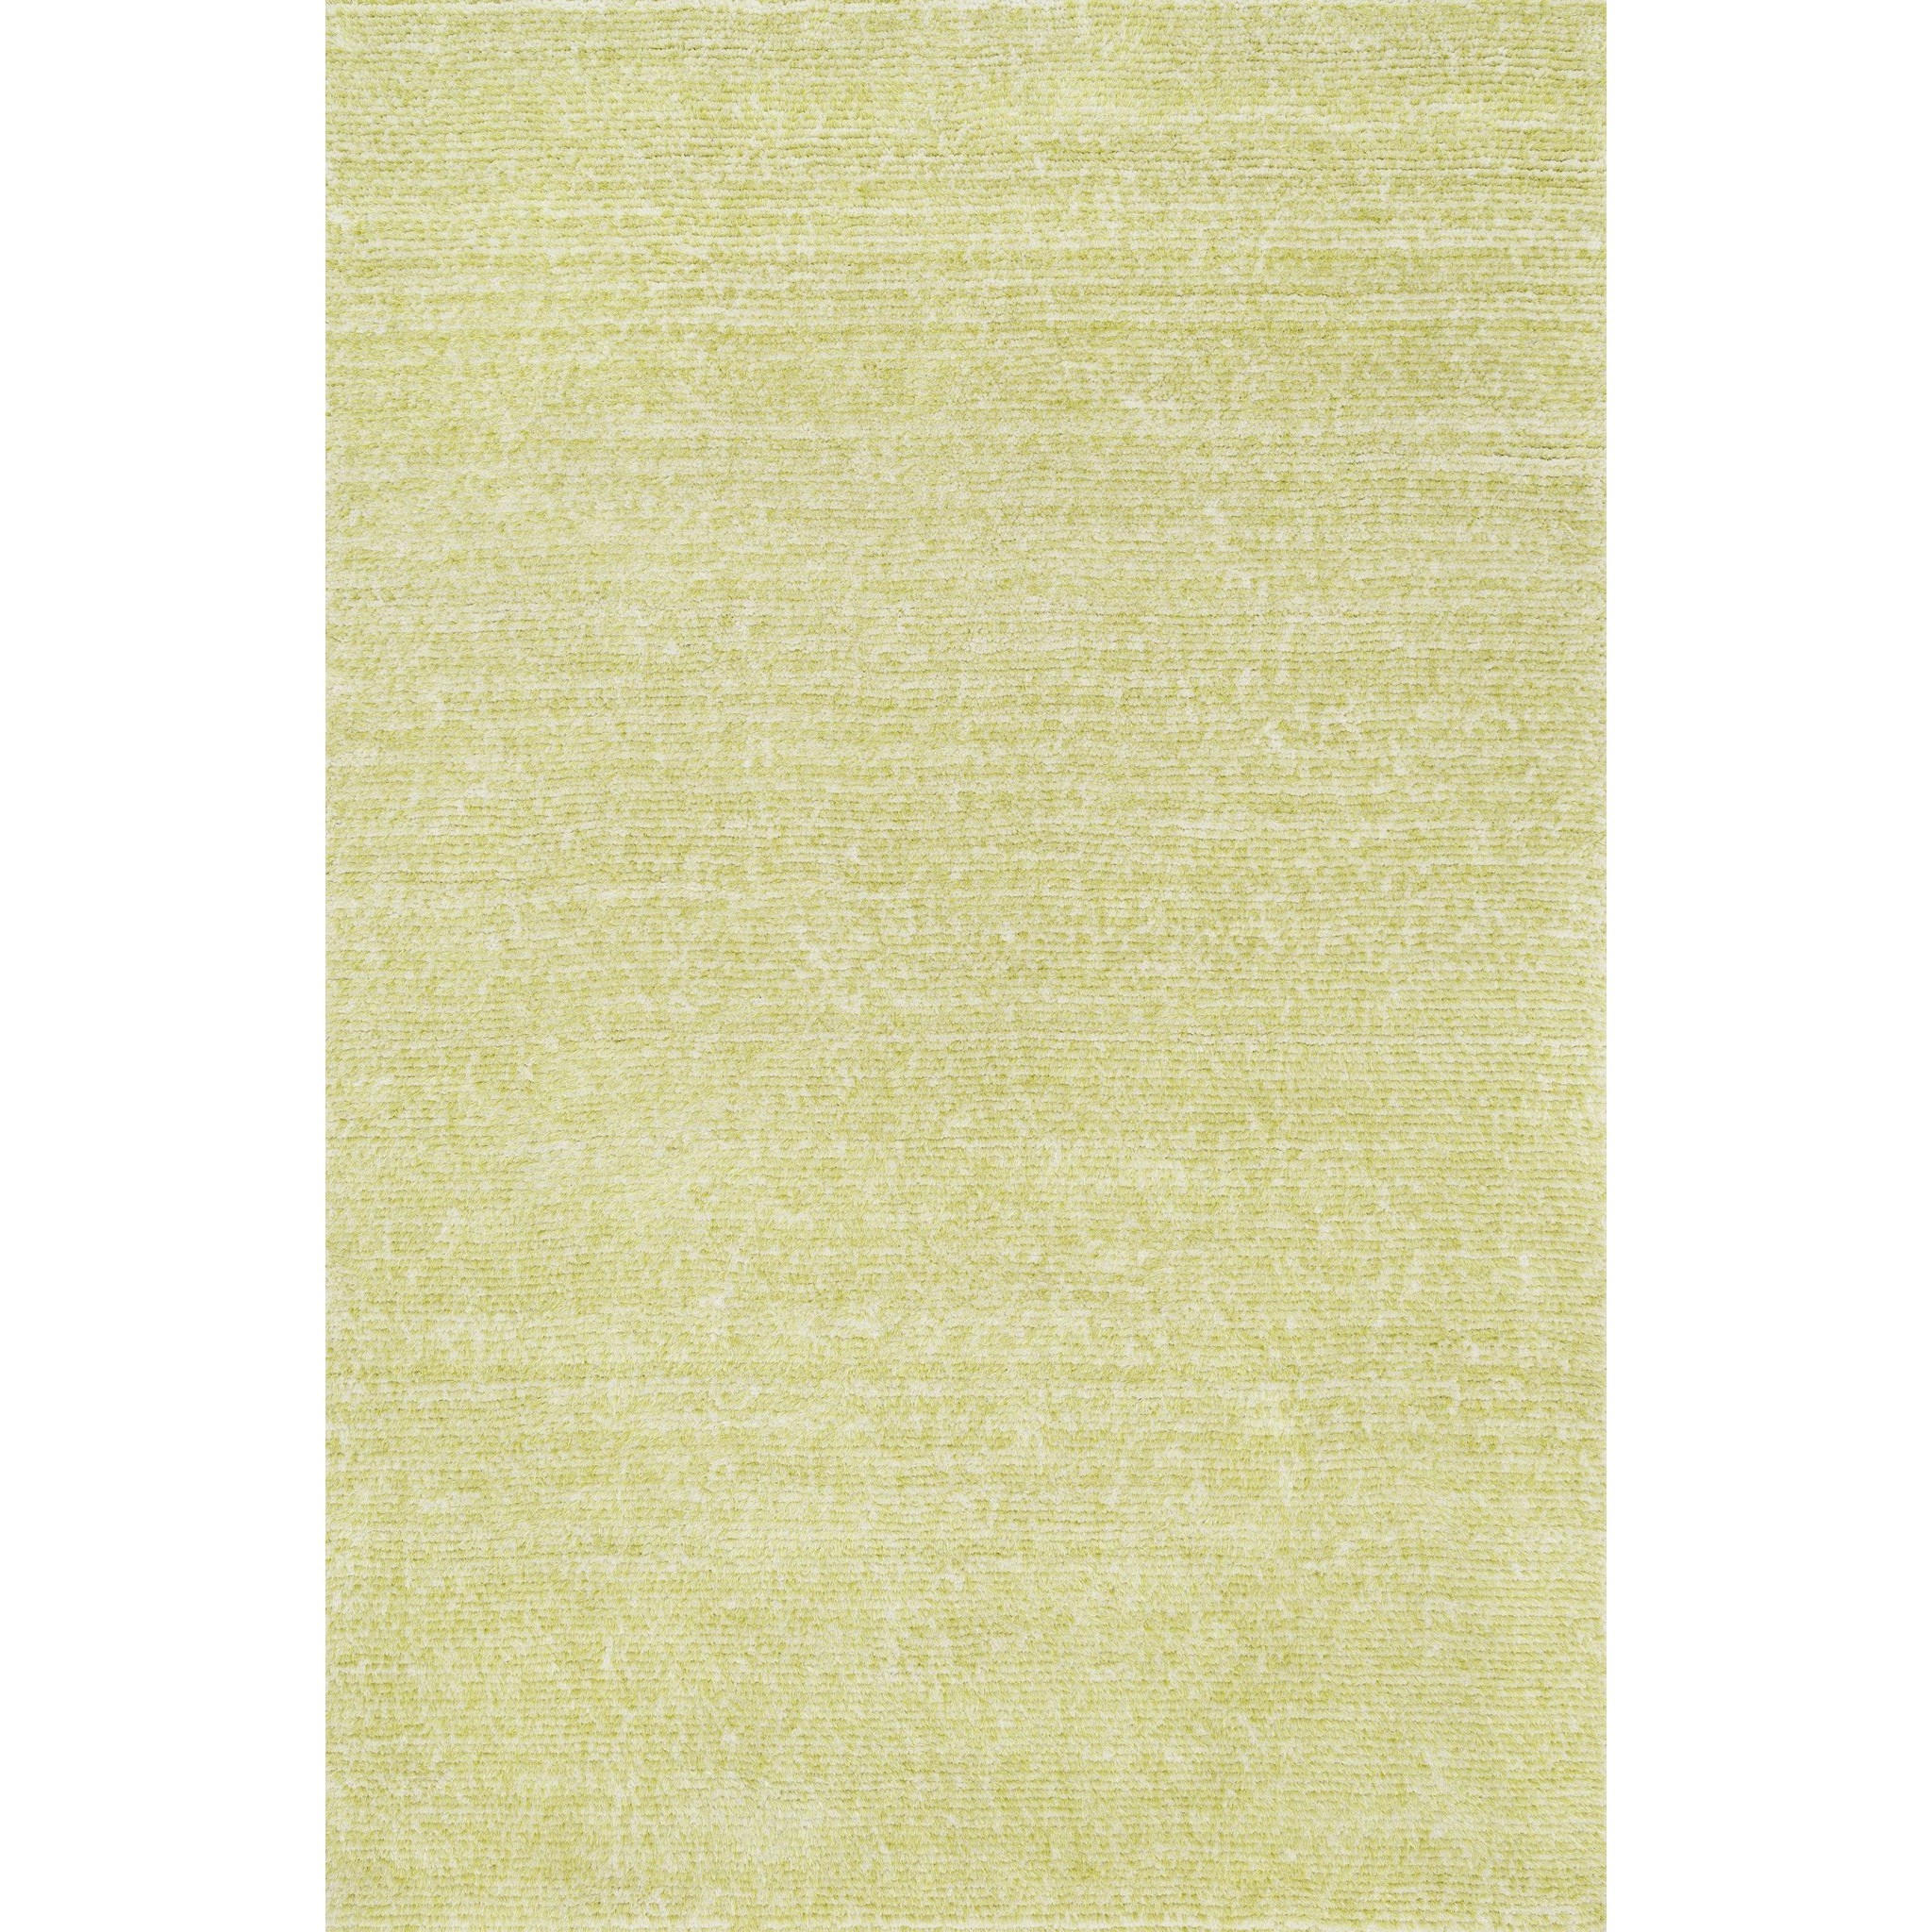 """Loloi Rugs Happy Shag 2'-3"""" x 3'-9"""" Area Rug - Item Number: HAPPHP-01XC002339"""